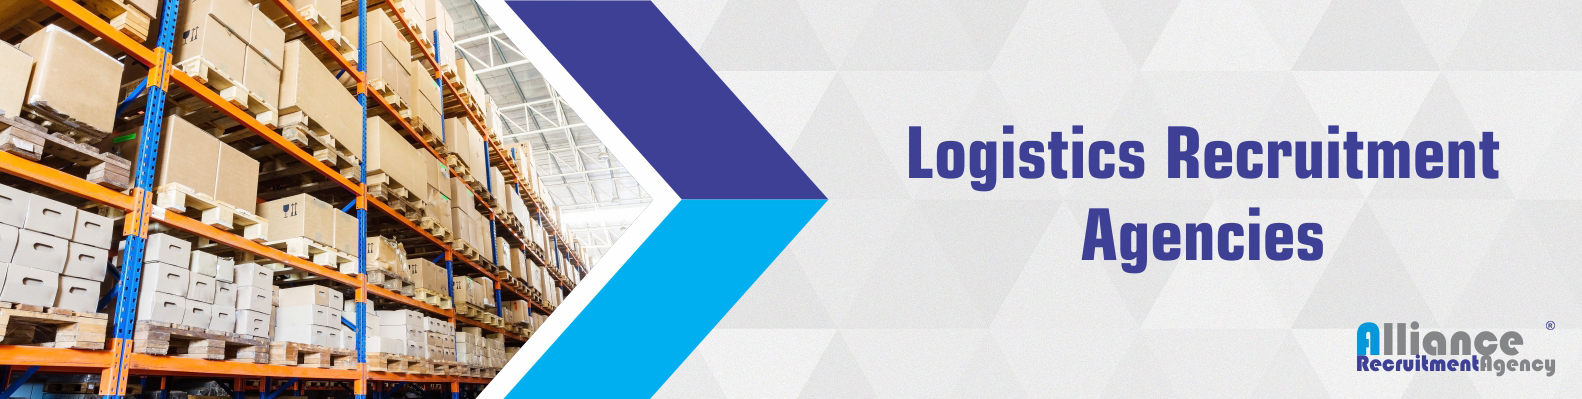 Logistics Recruitment Agencies - Logistics Consulting Companies